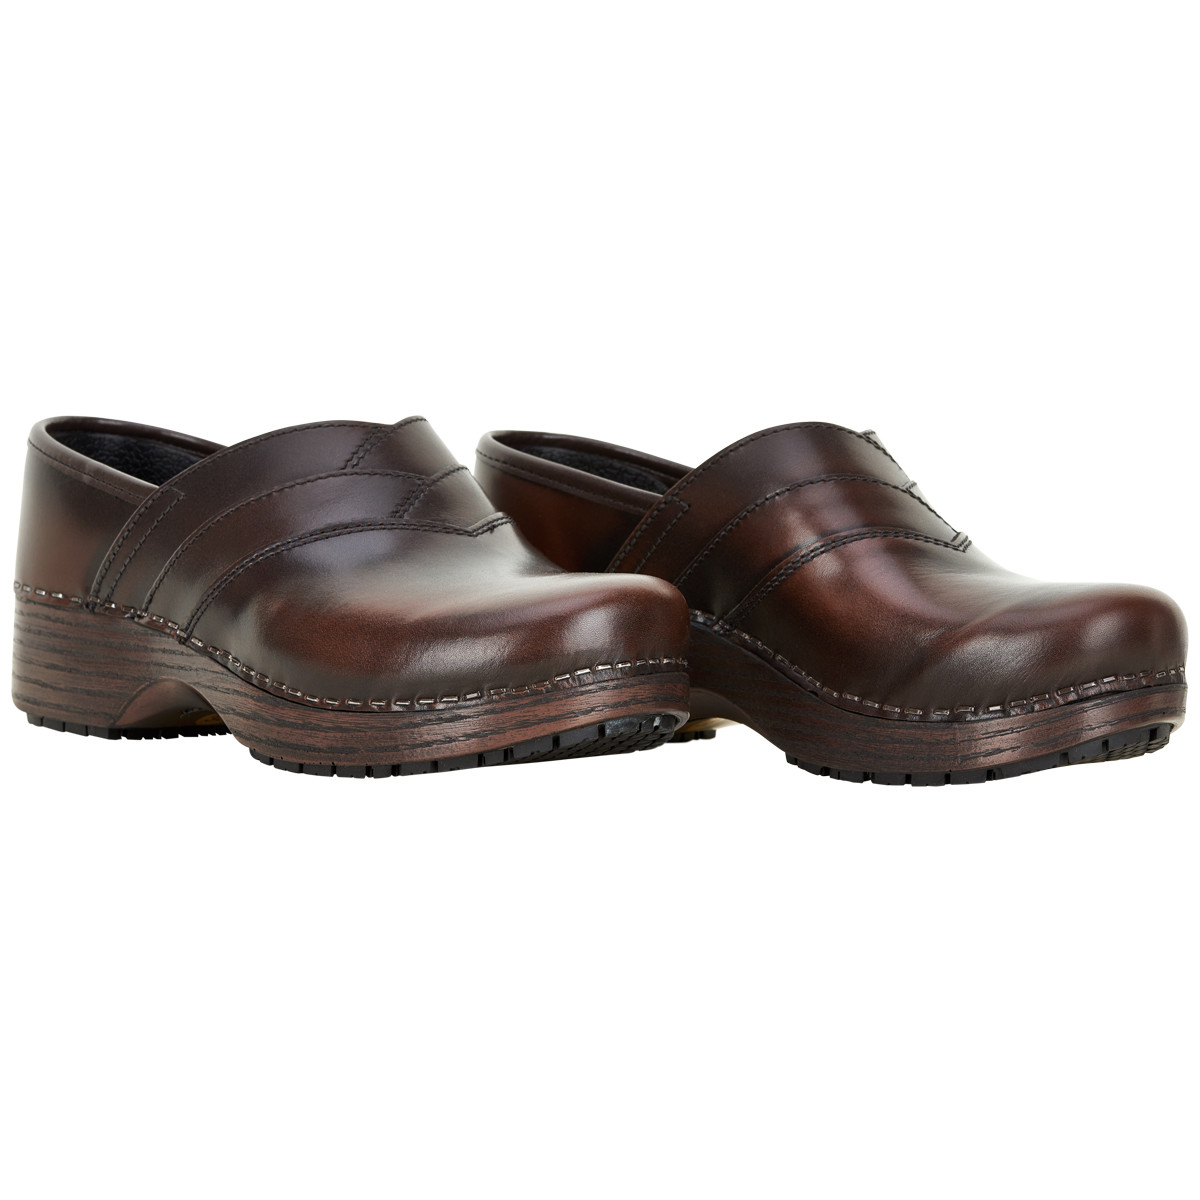 SANITA EVER CABRIO CLOGS 1990102N 55